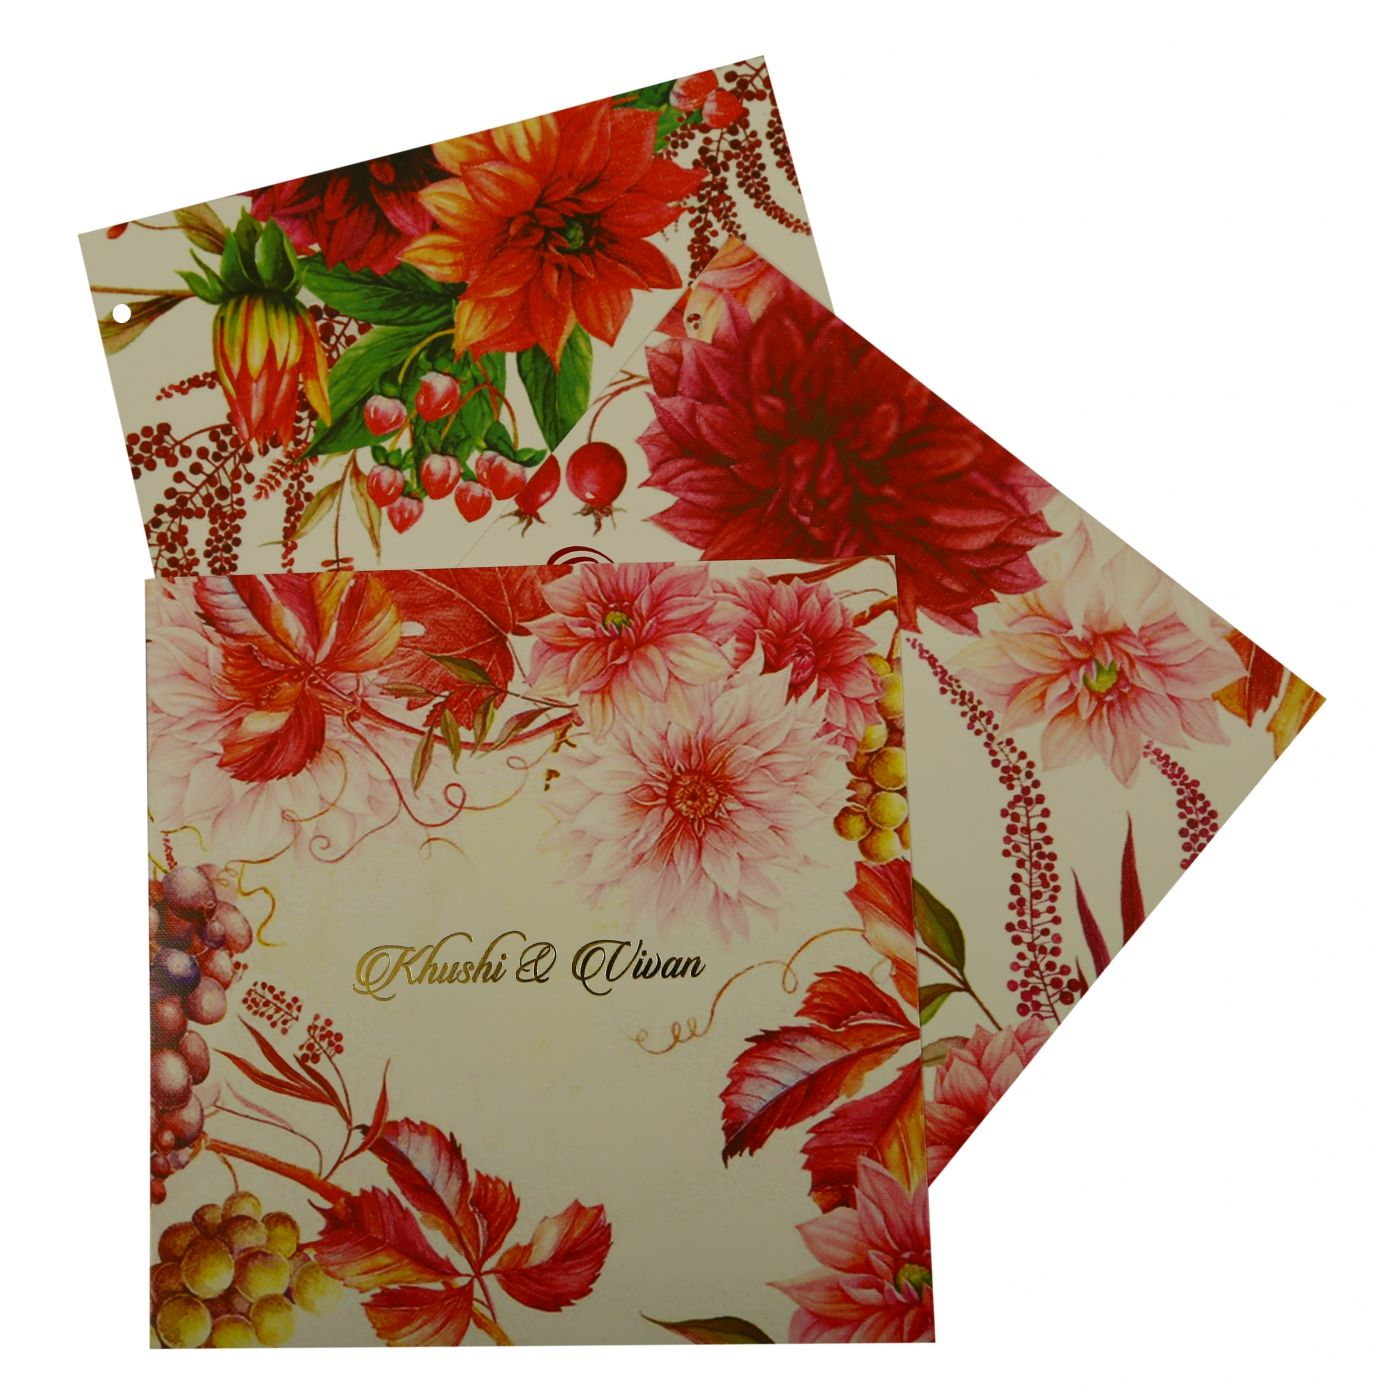 WHITE MATTE FLORAL THEMED - OFFSET PRINTED WEDDING INVITATION : CD-1912 - IndianWeddingCards